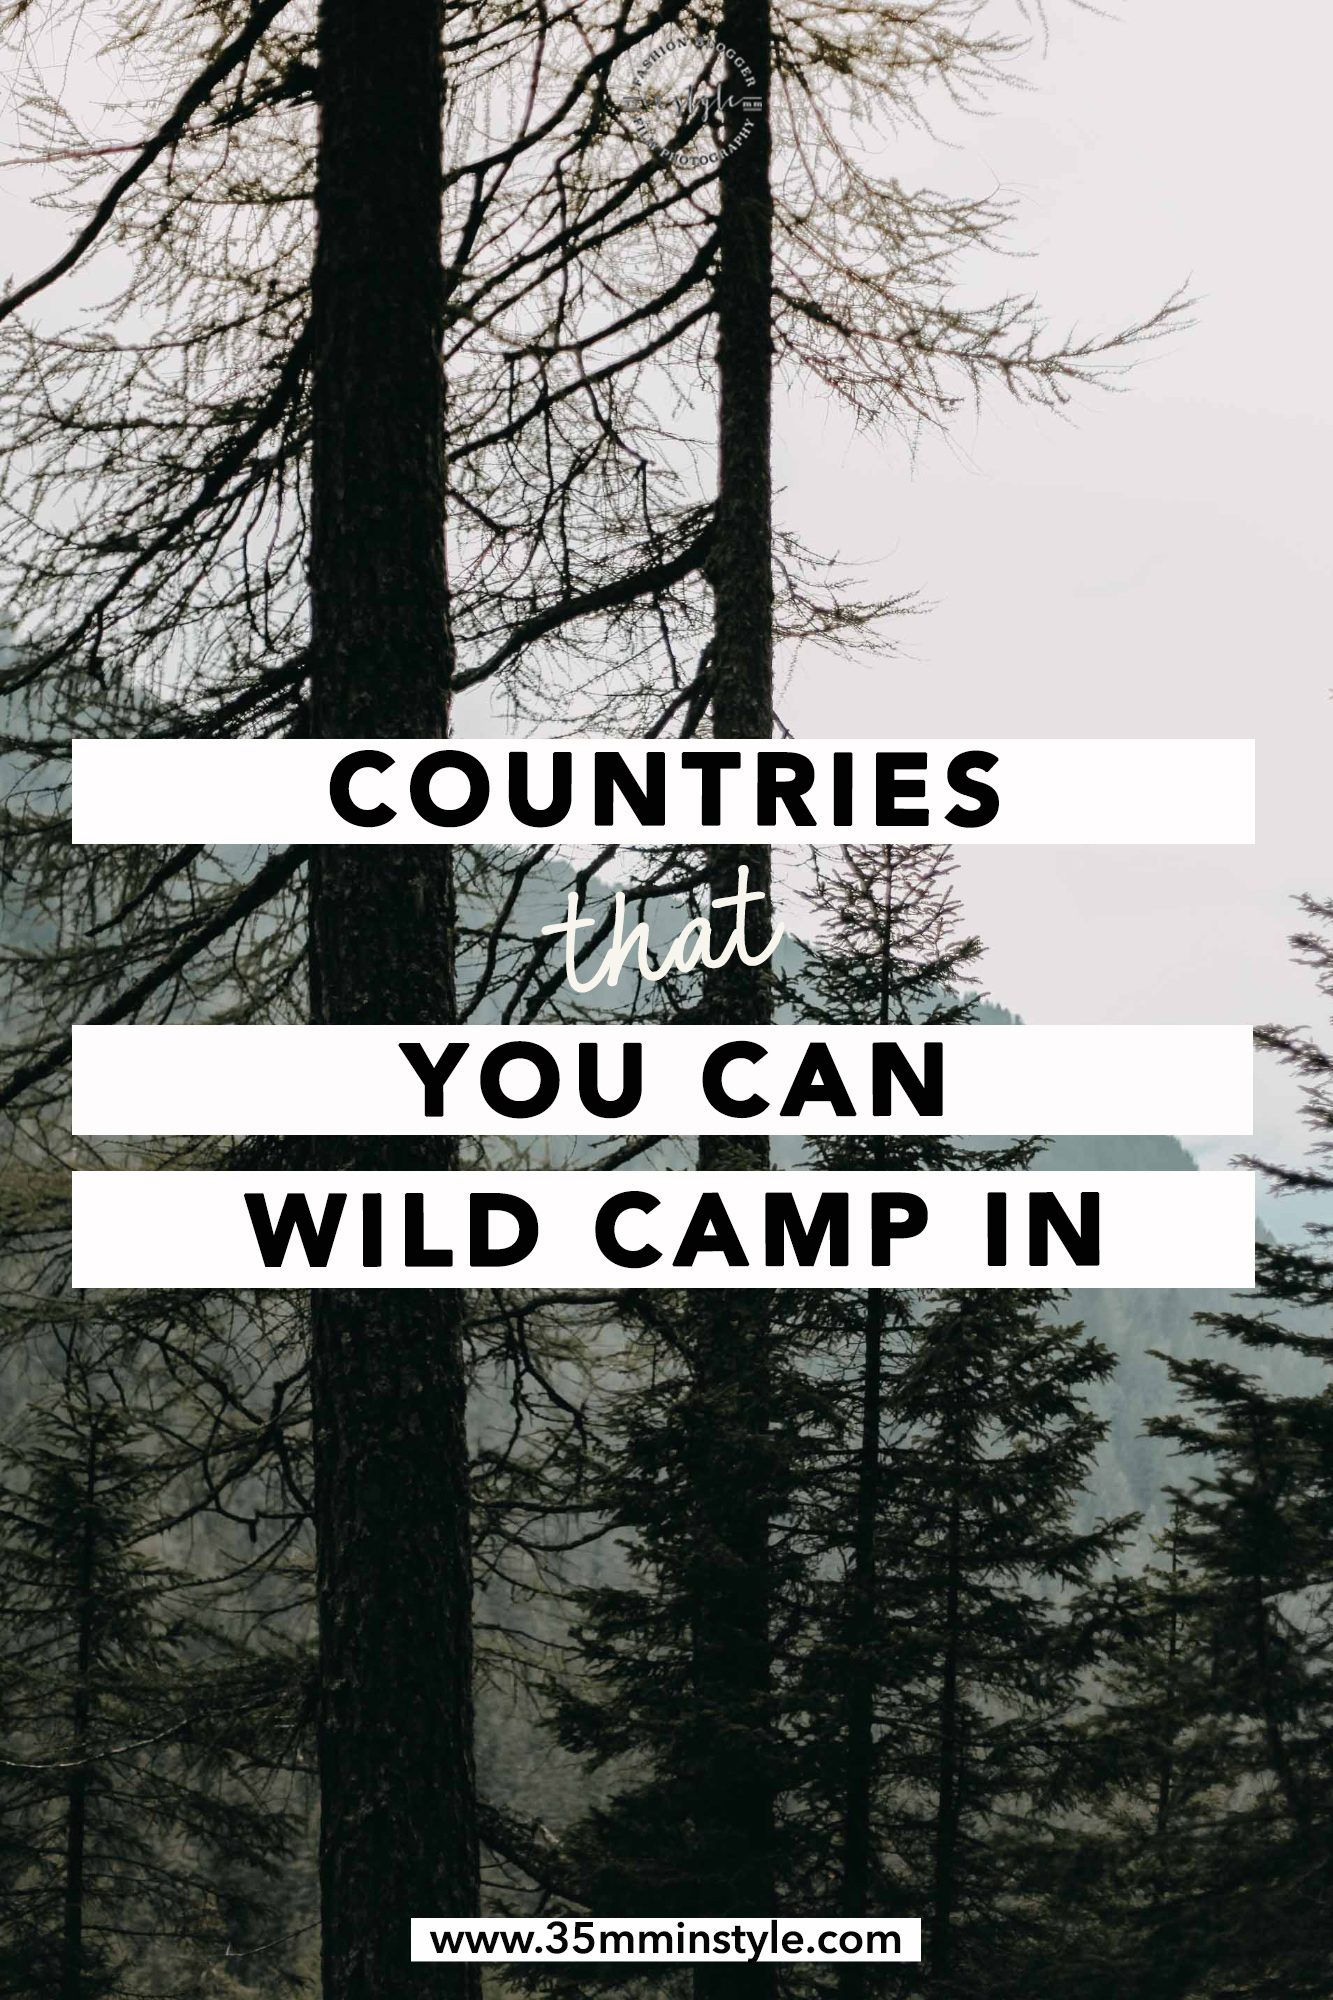 countries that you can wild camp in